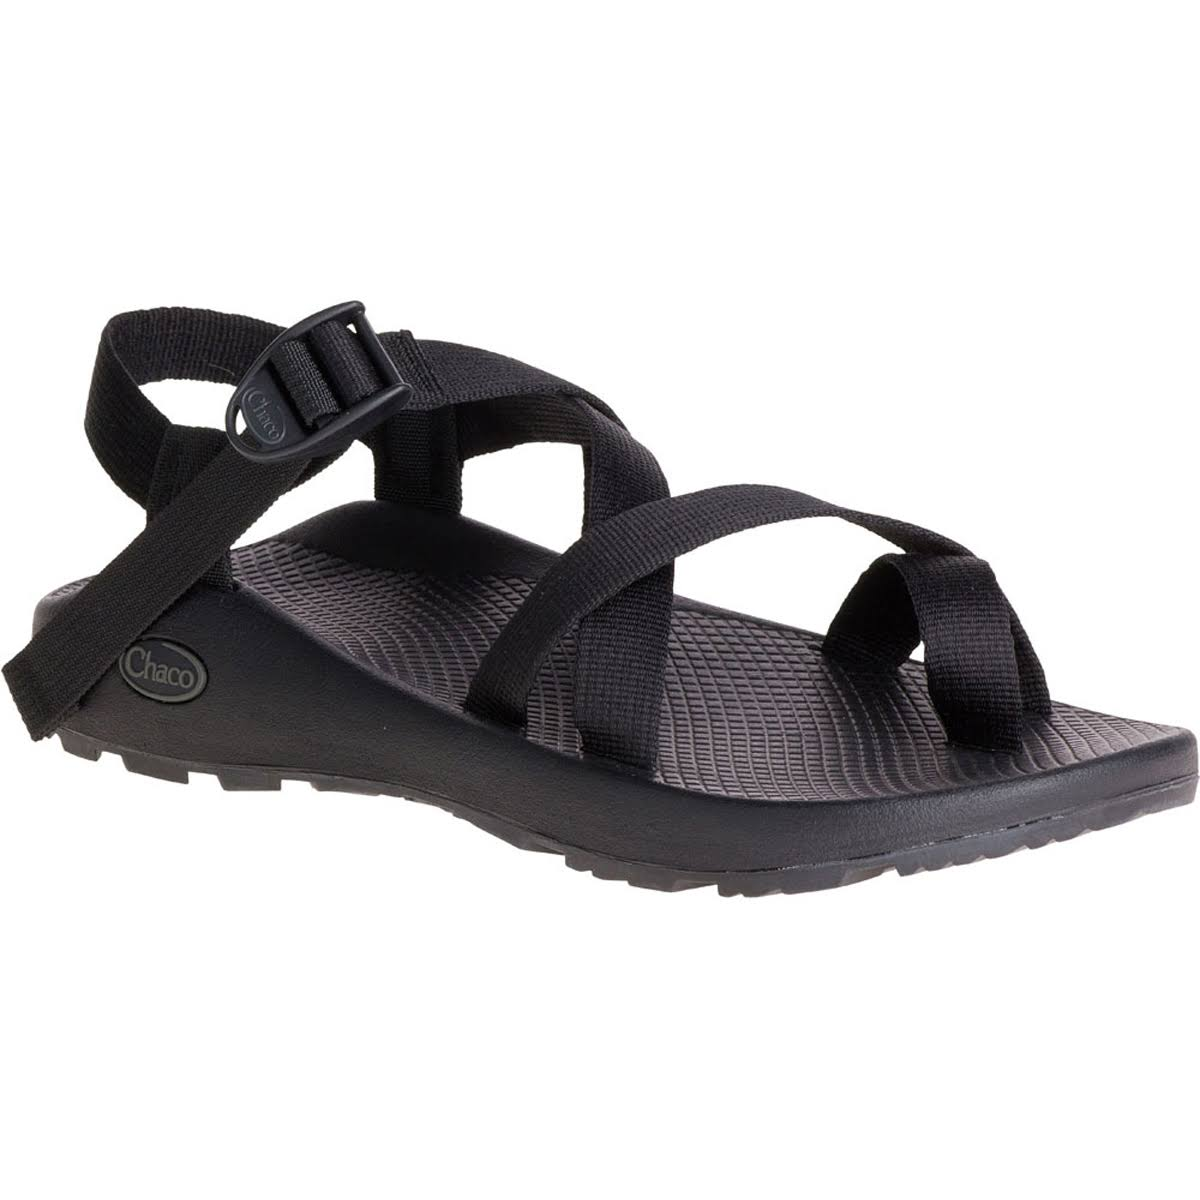 Chaco Z2 Classic Women's Sandals - Black, US14